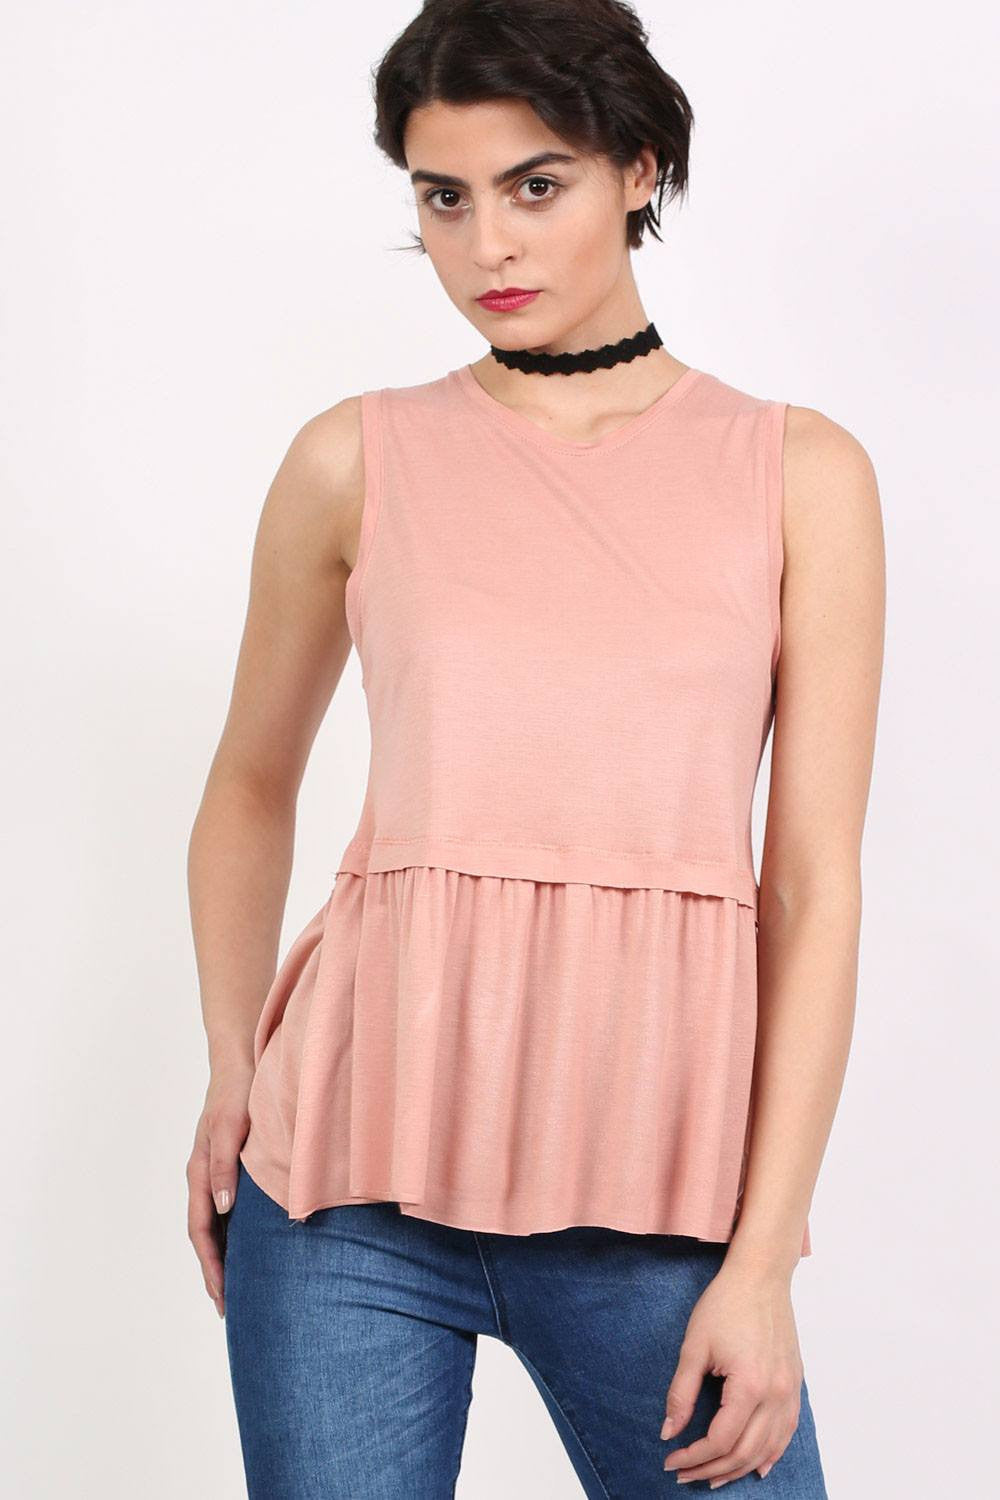 Swing Peplum Hem Vest Top in Dusty Pink 1